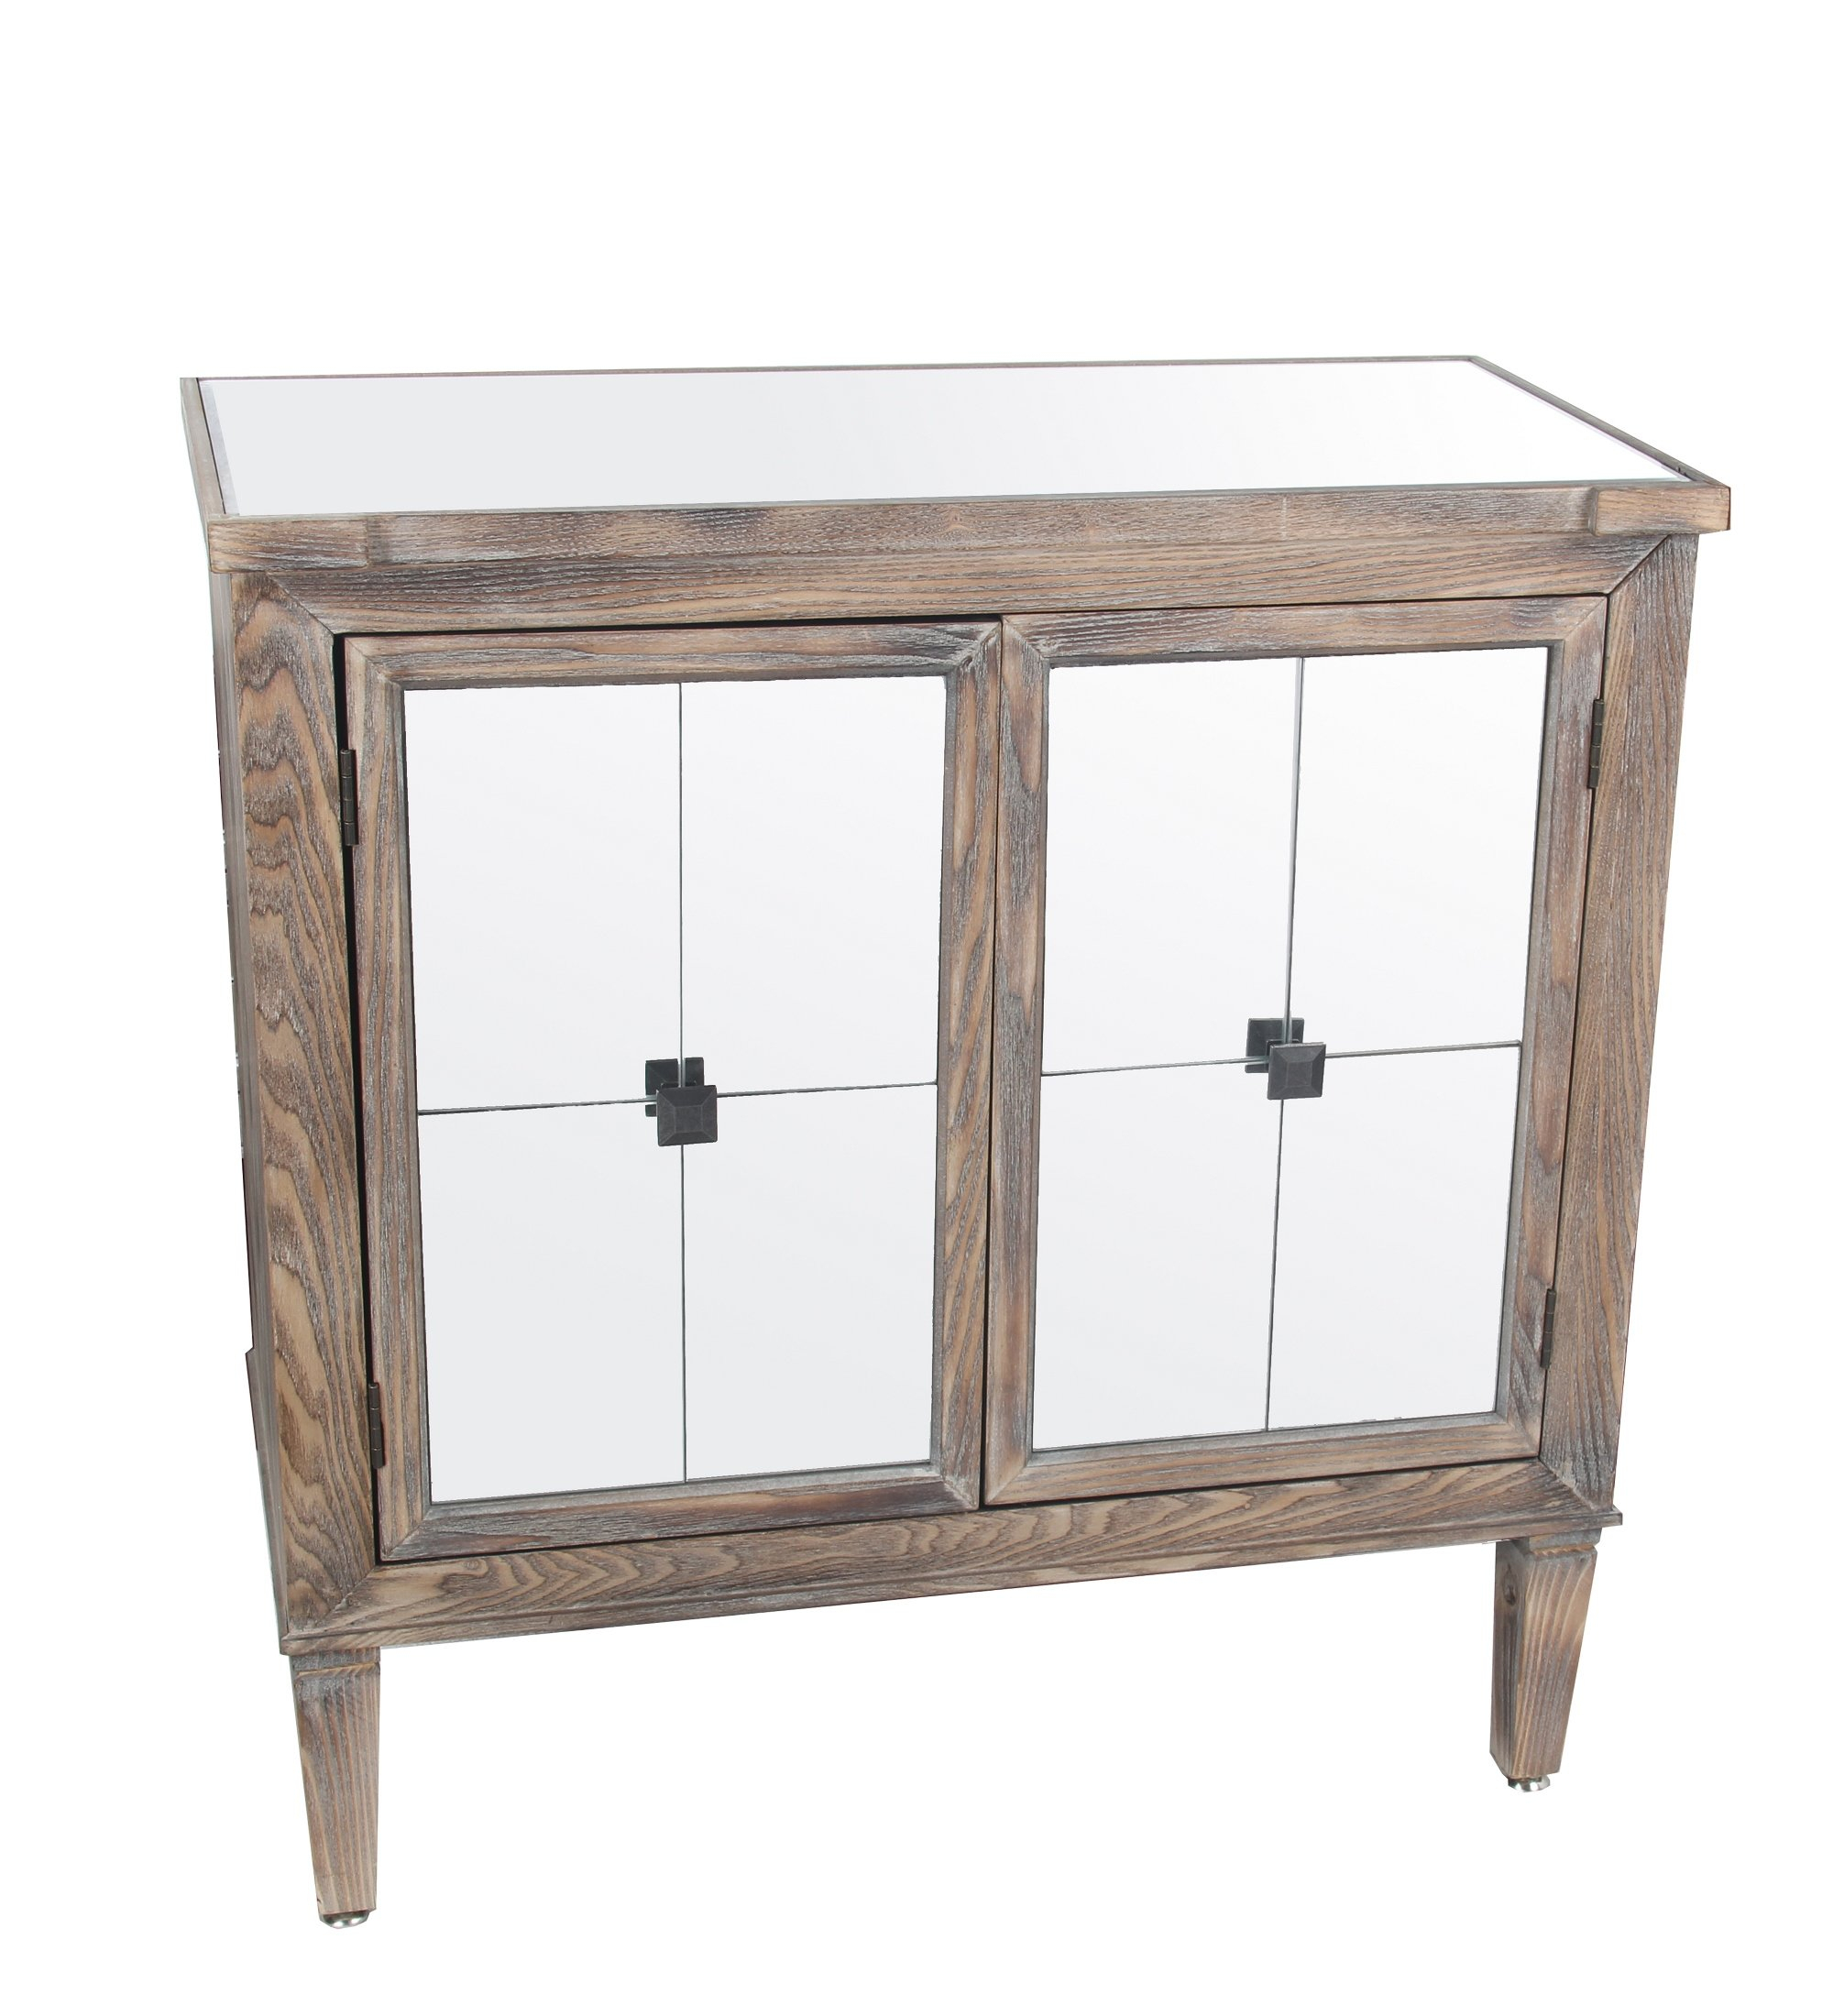 Ringling 2 Door Accent Cabinet Intended For Eau Claire 6 Door Accent Cabinets (Gallery 23 of 30)